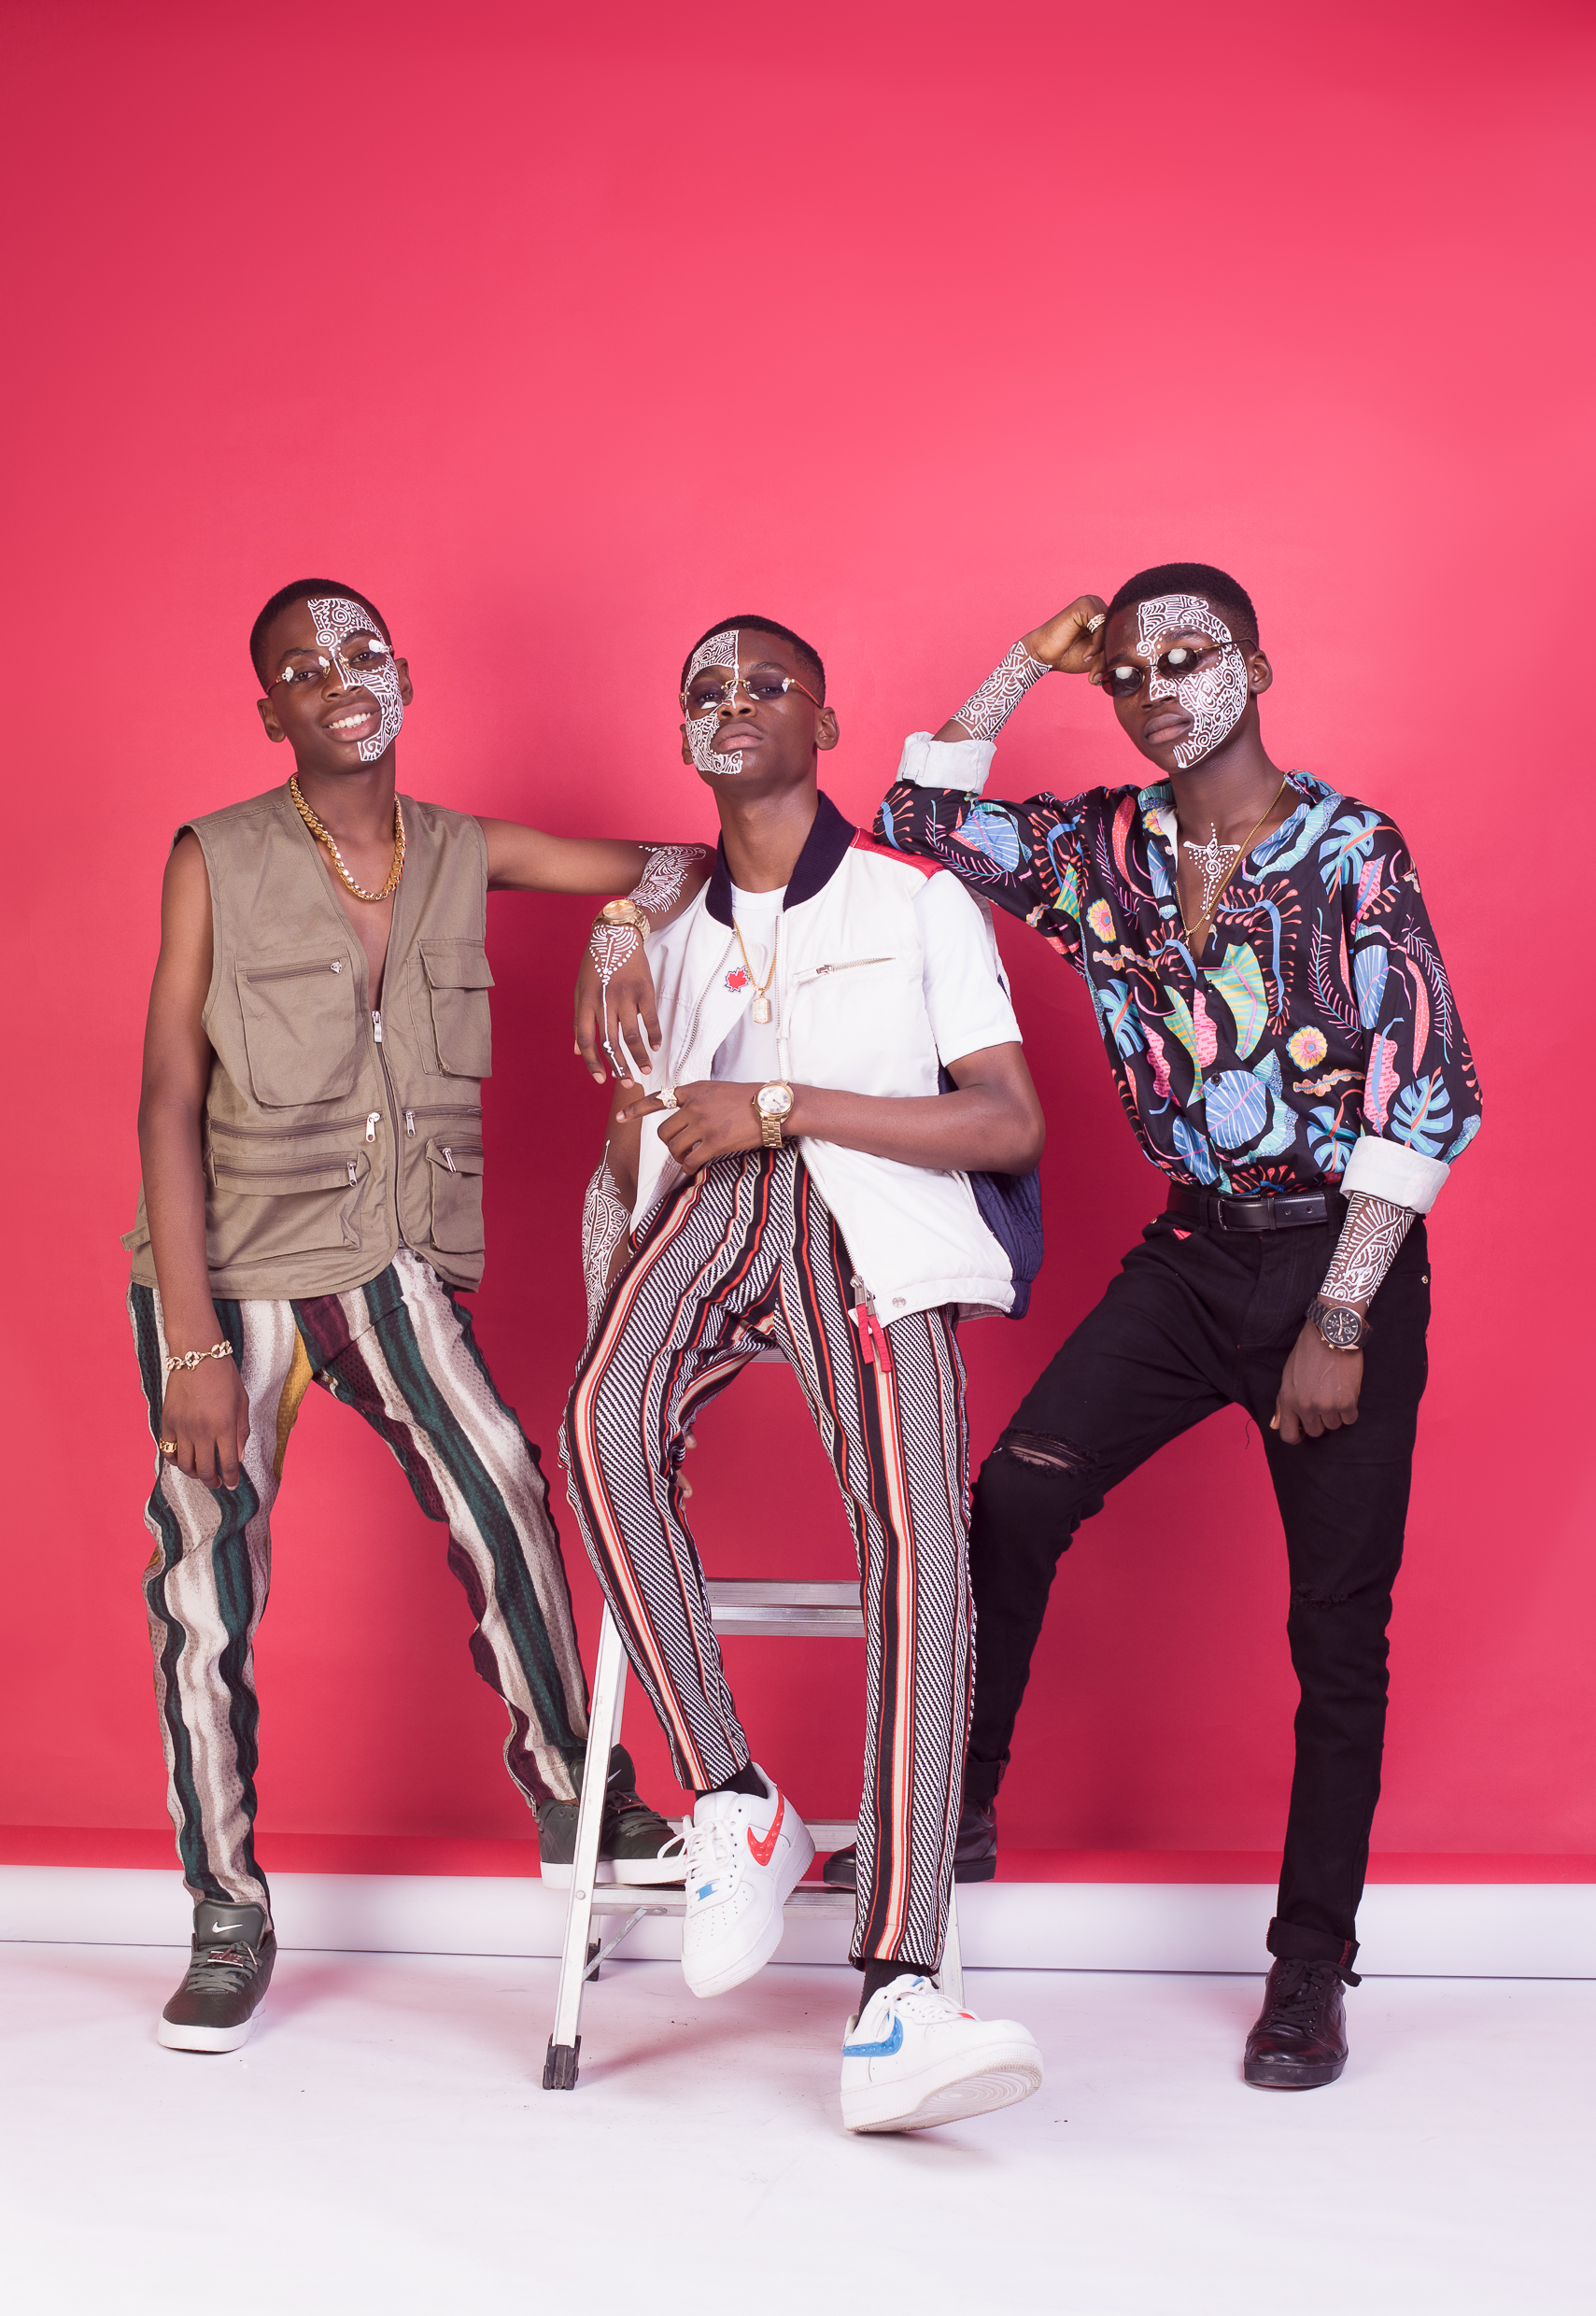 14 year old Boy Band, Puppy Pound Releases debut EP Project